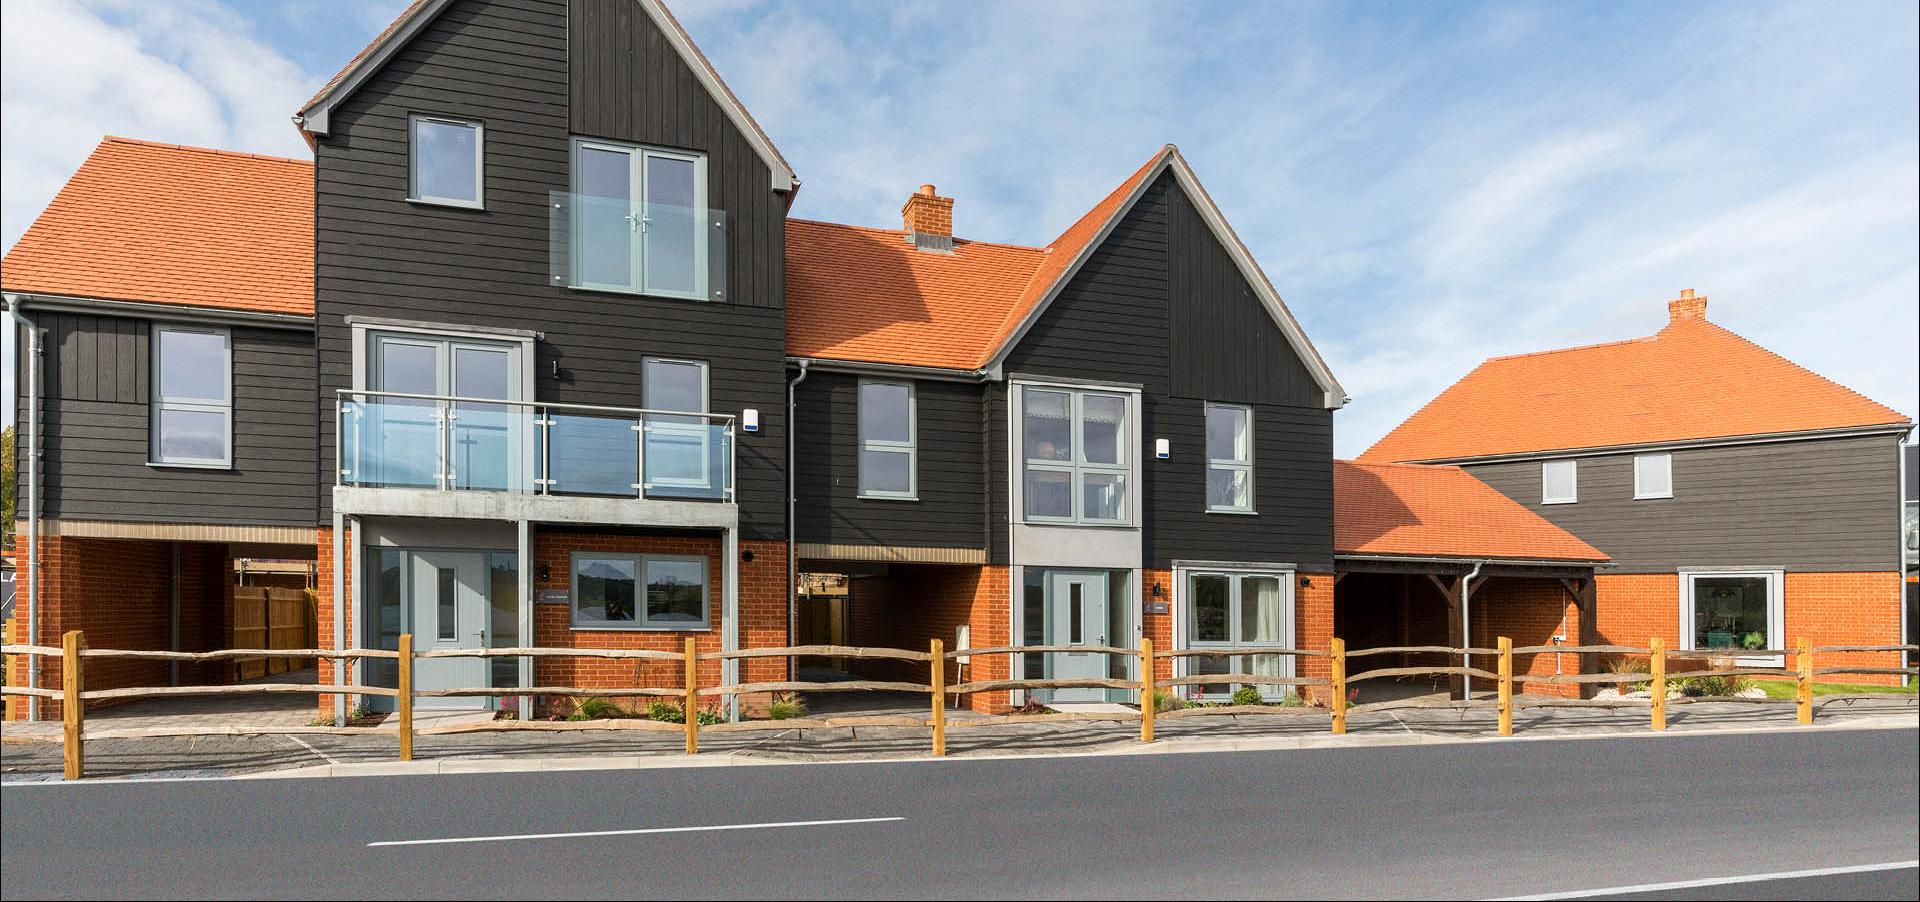 Conningbrook Homes